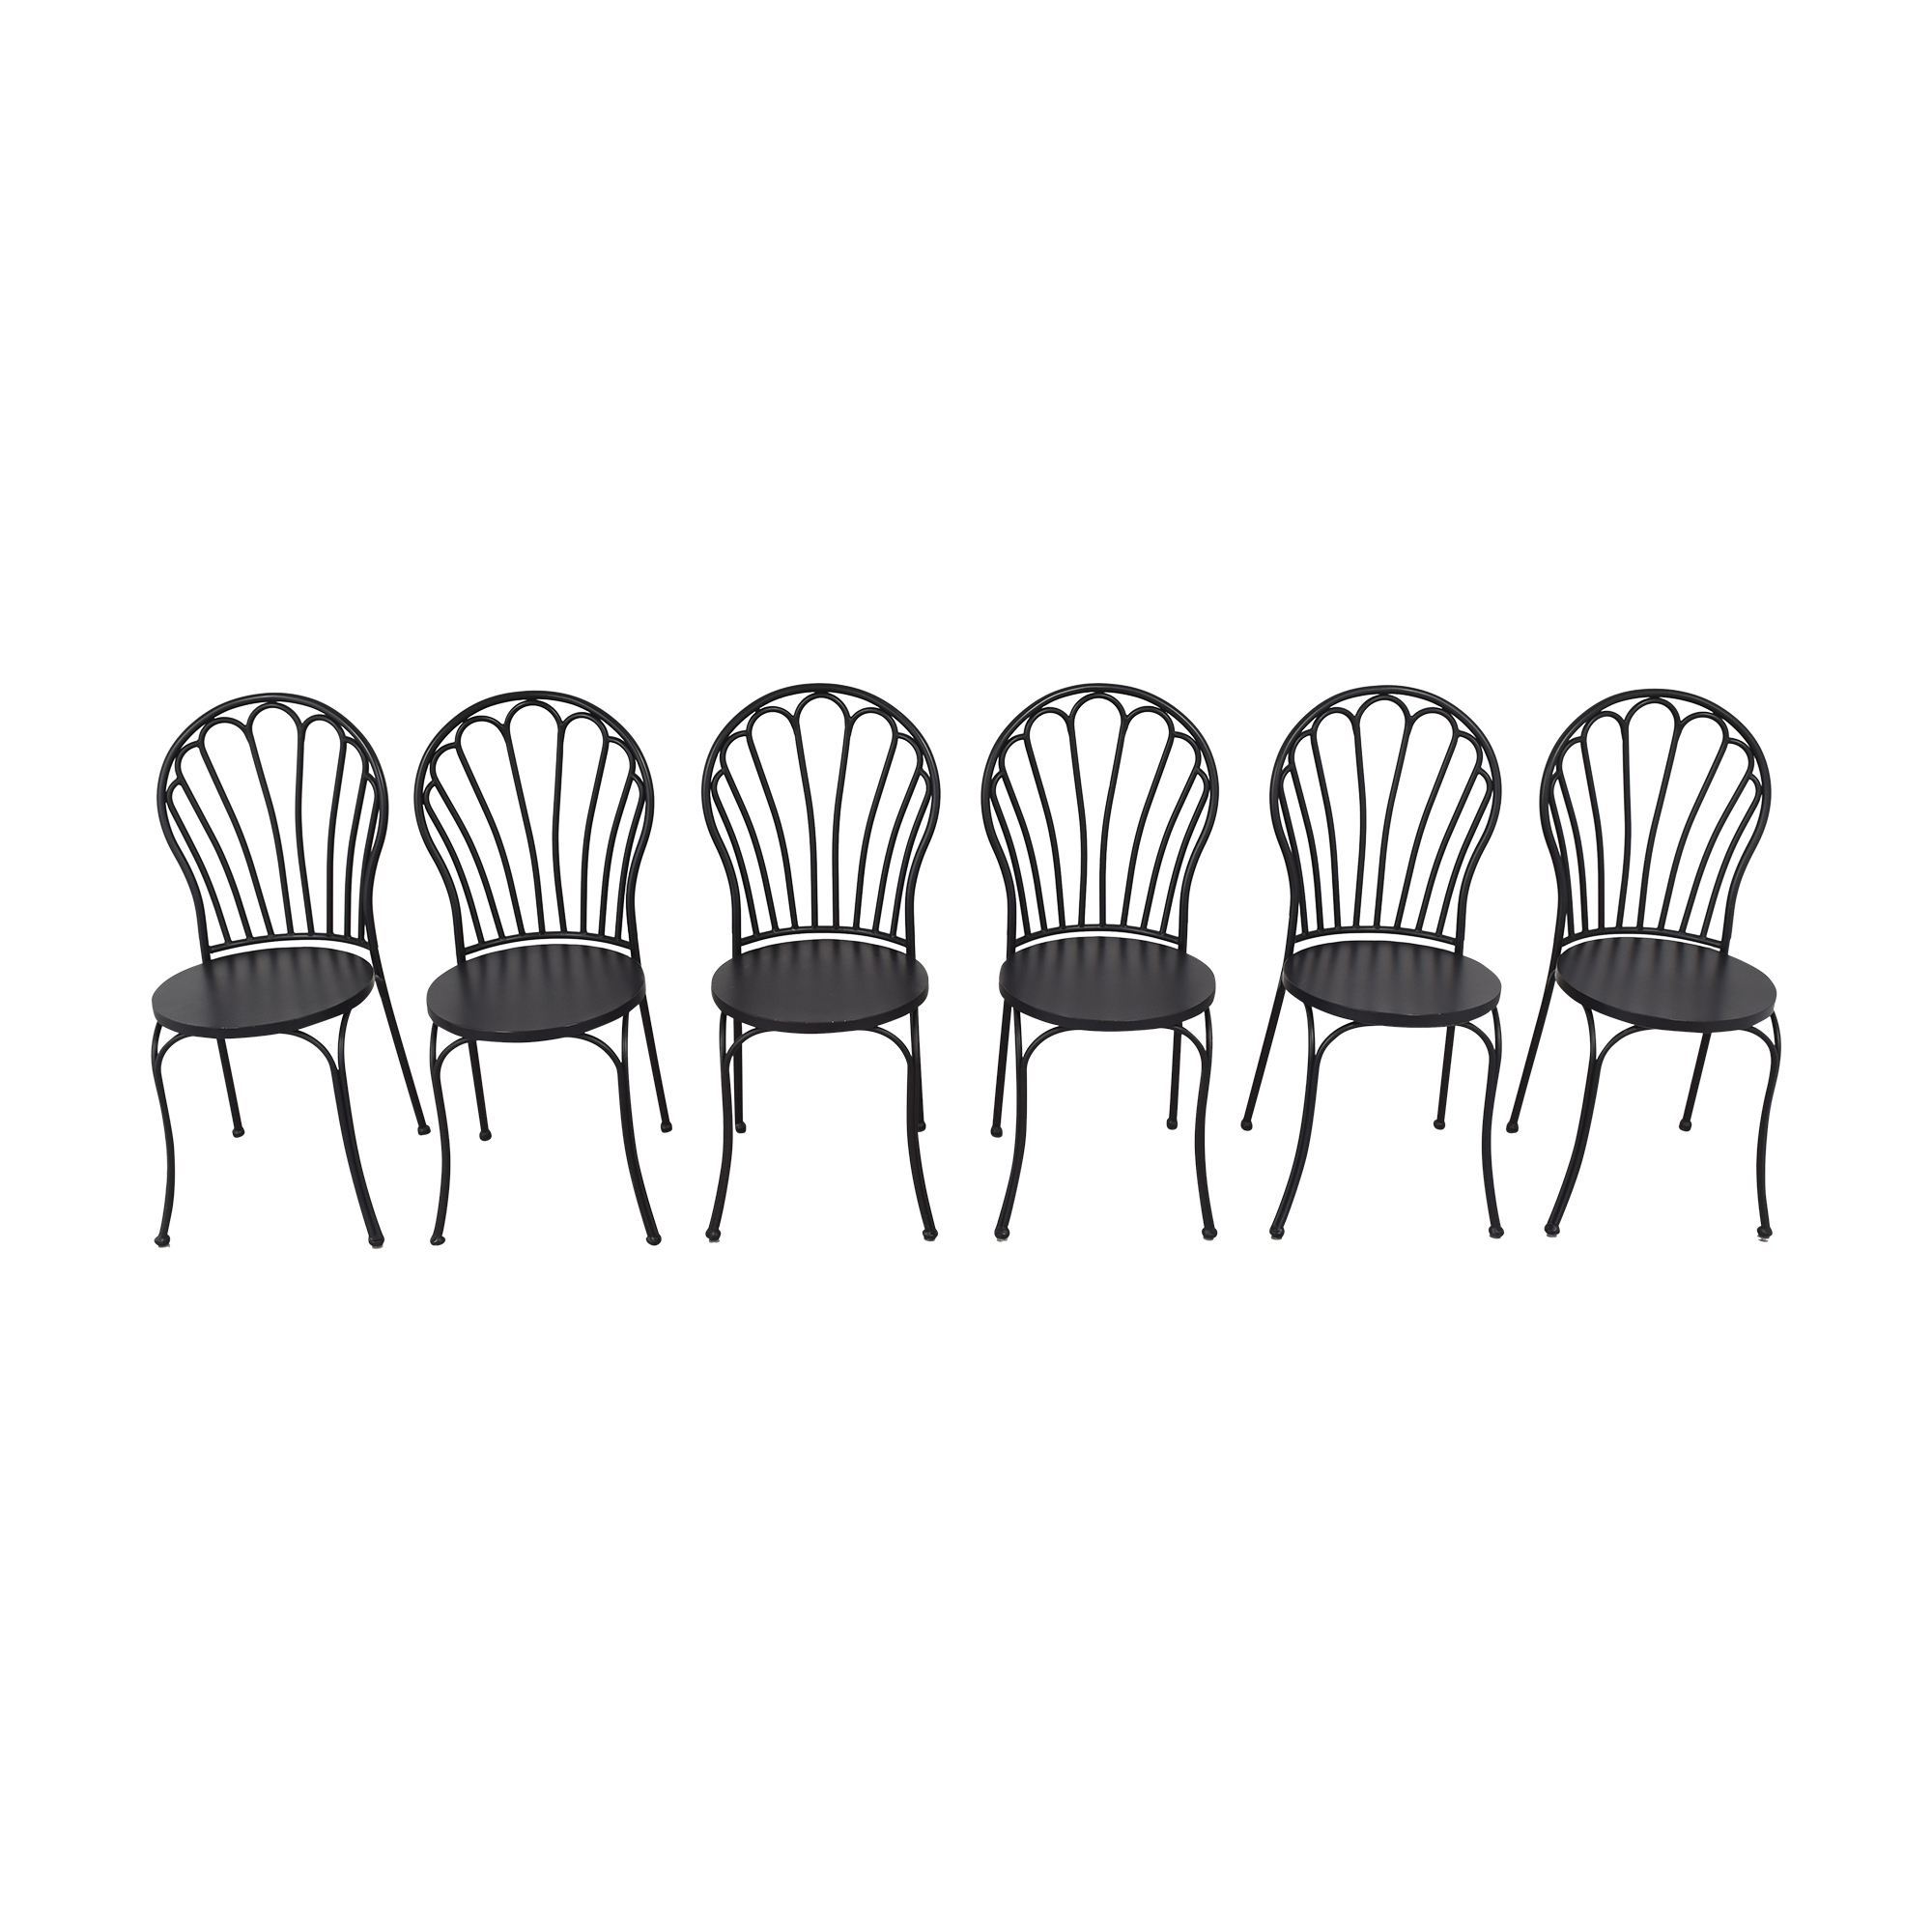 Magnolia Home Magnolia Home Dining Chairs price